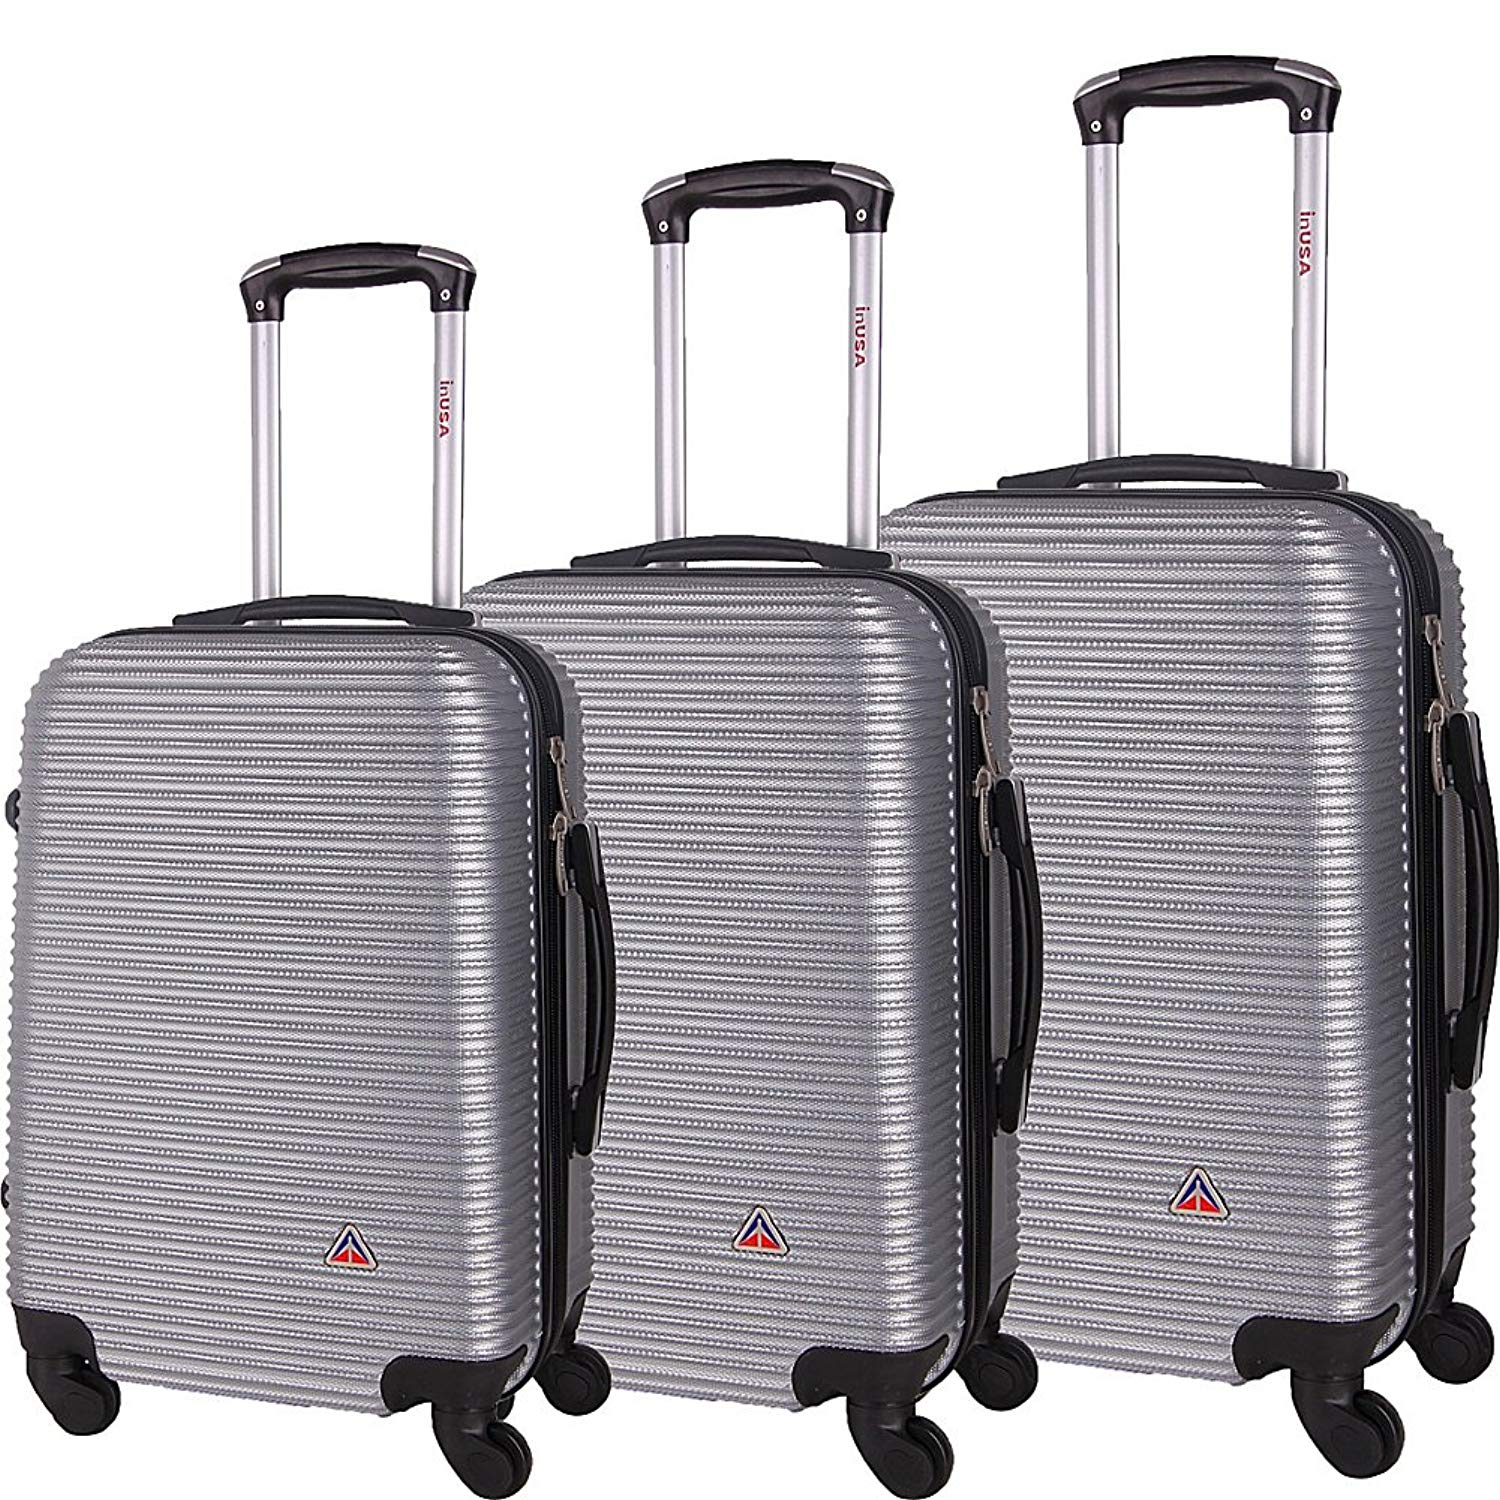 45db62ed8 Get Quotations · inUSA Luggage Royal 3 Piece Lightweight Hardside Spinner  Luggage Set (Silver)